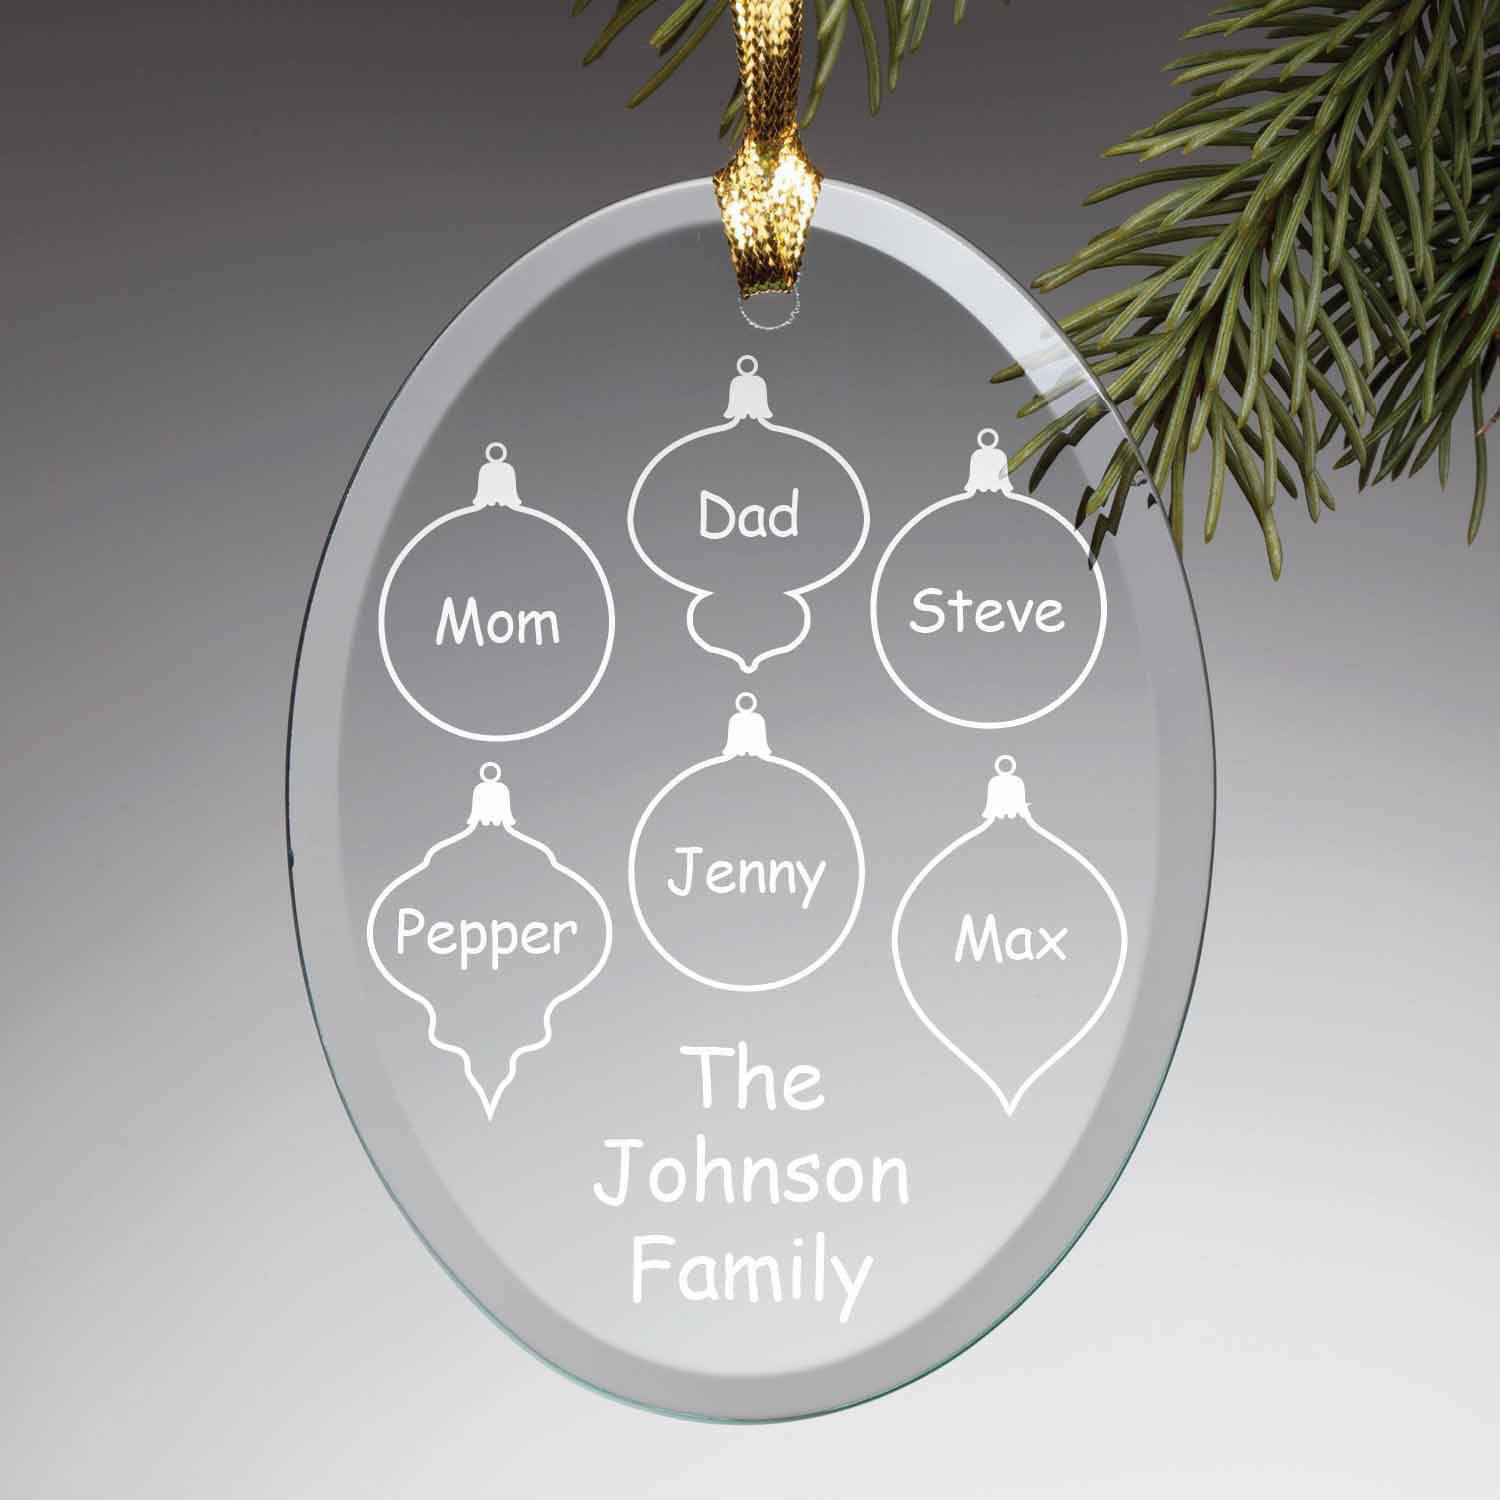 Personalized Glass Christmas Ornament - Family